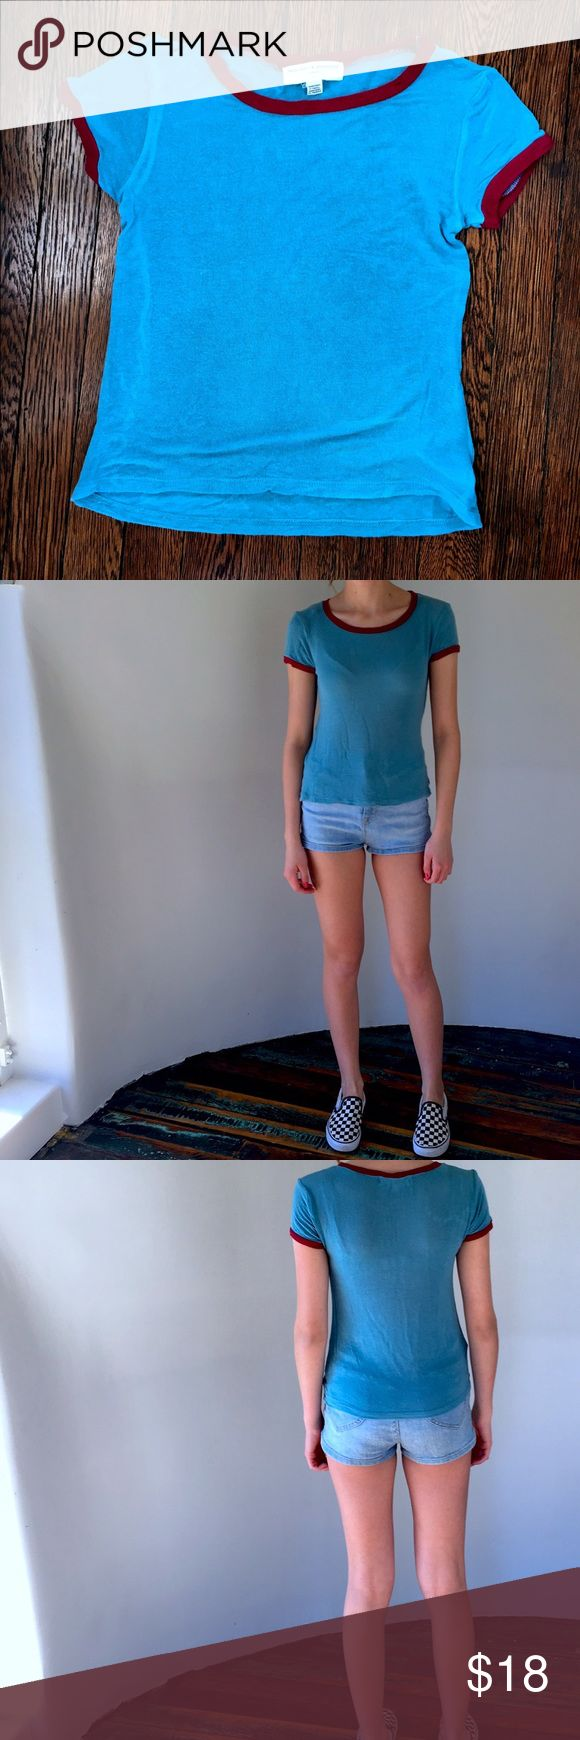 Urban outfitters Project Social T Molly Ringer tee It's a blue (almost green) tee shirt with red on the sleeve and neck lines. There is a spot that looks lighter than the rest but it came that way and it still looks great! It's made from stretchy material. I only wore it once and it's in great condition! Urban Outfitters Tops Tees - Short Sleeve